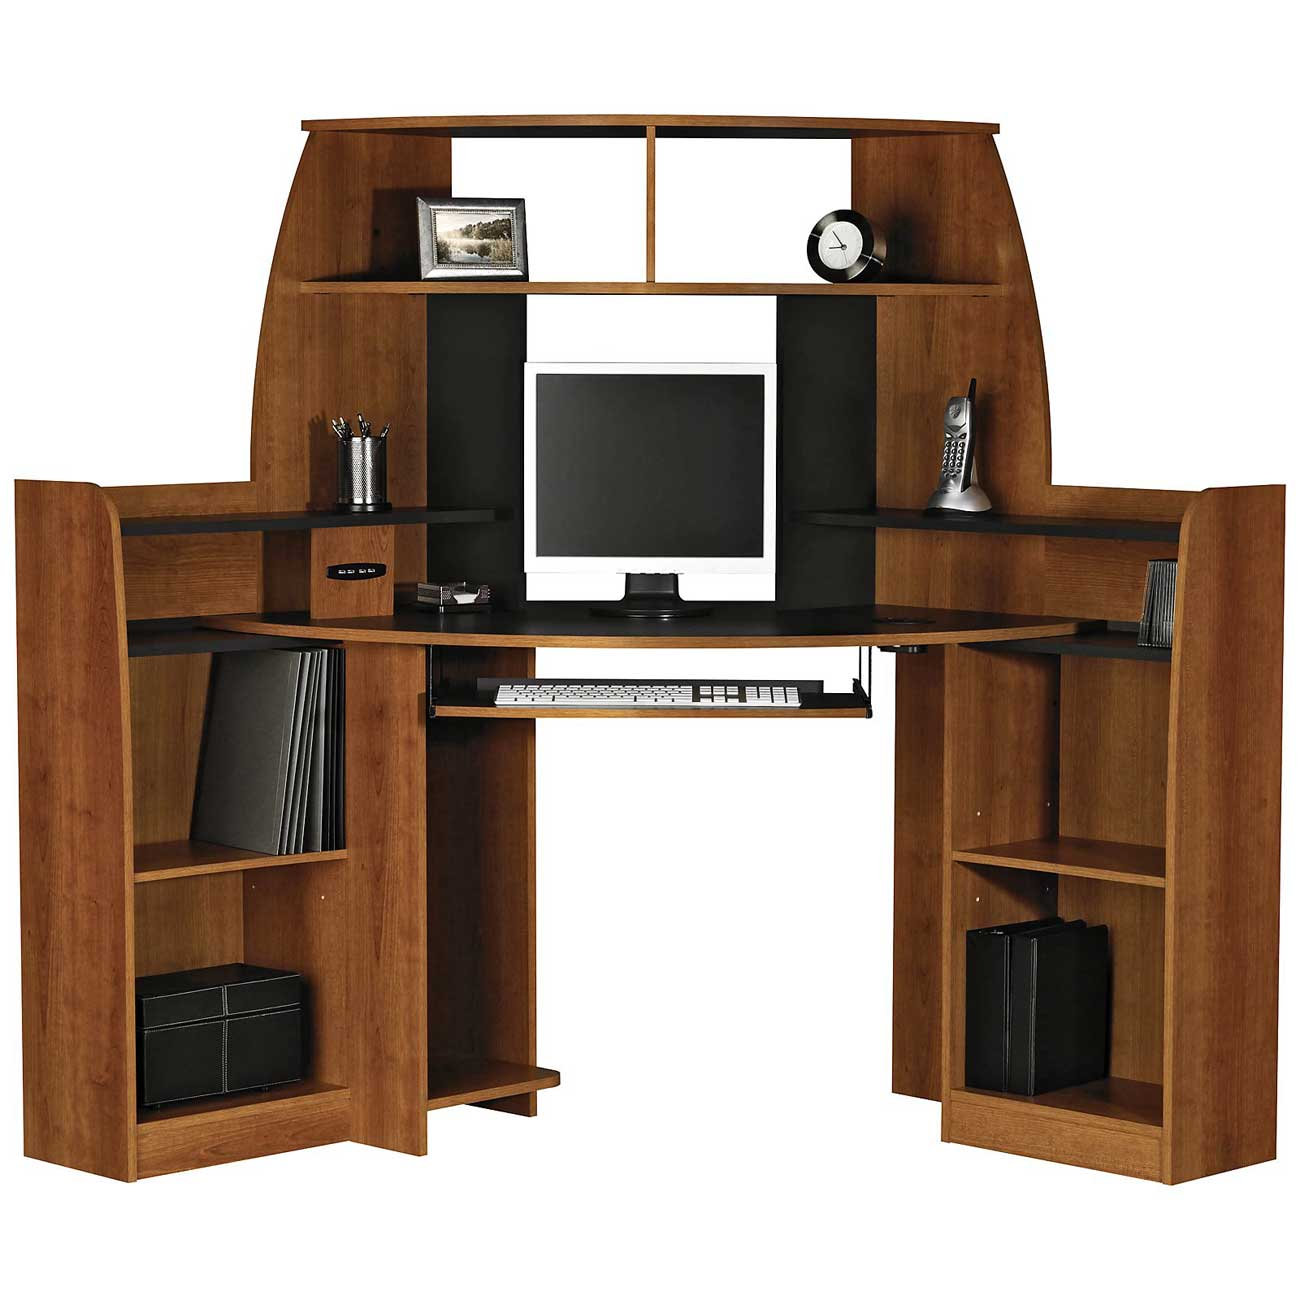 Corner computer desk design and ideas - Storage staples corner ...